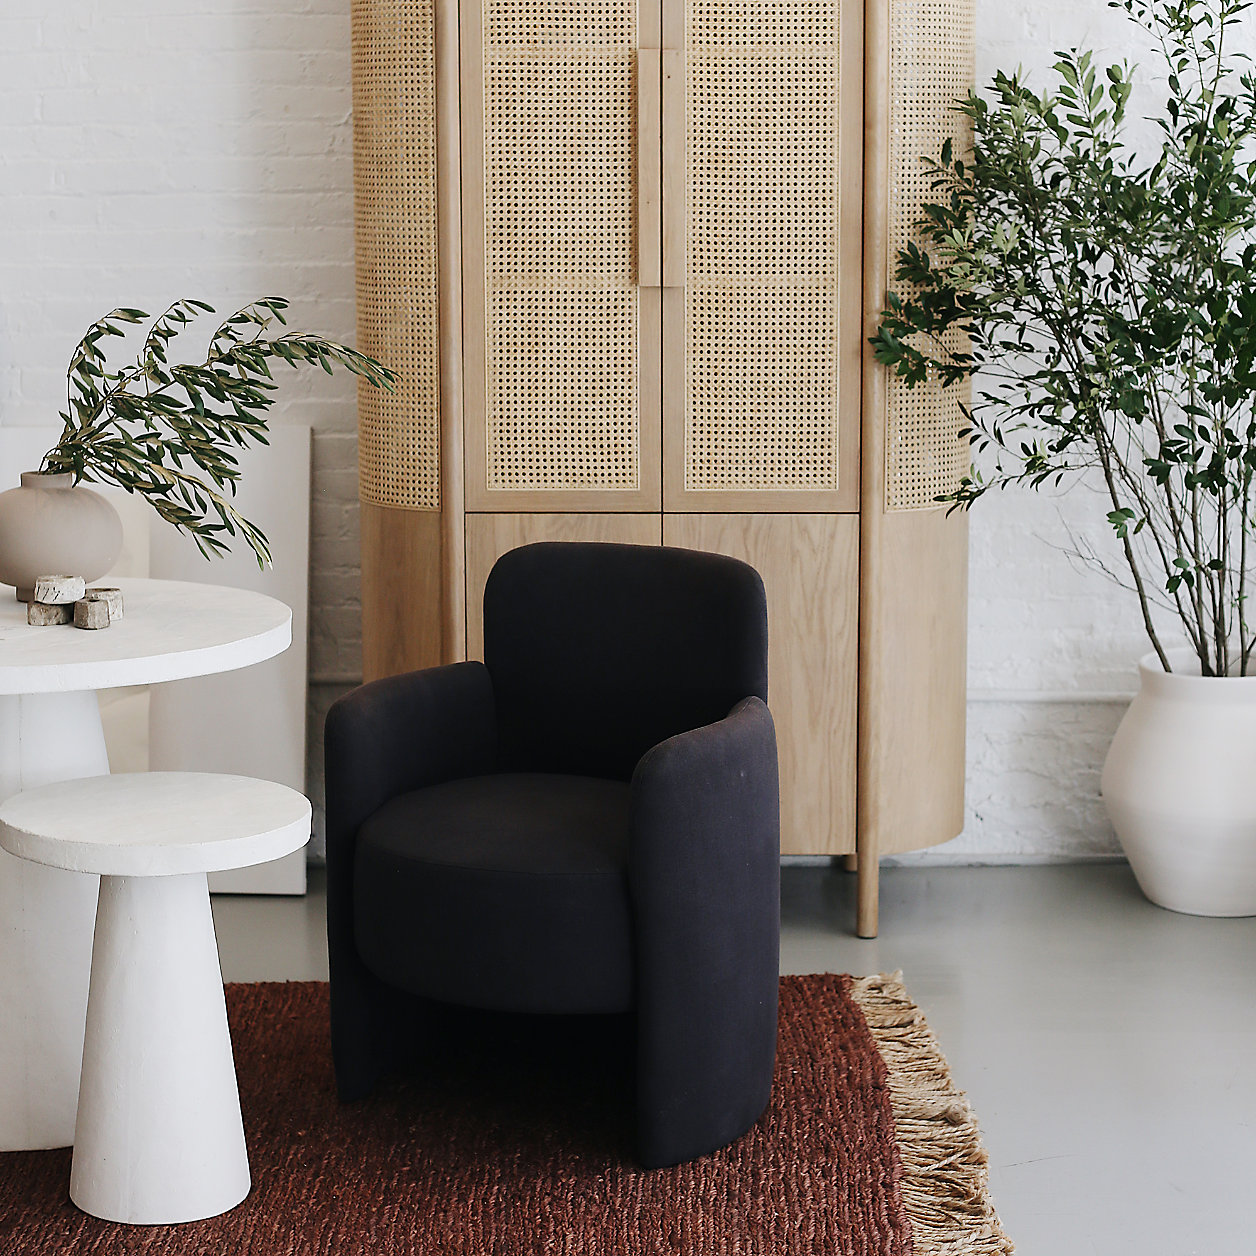 Crate and Barrel Fields Natural Storage Cabinet